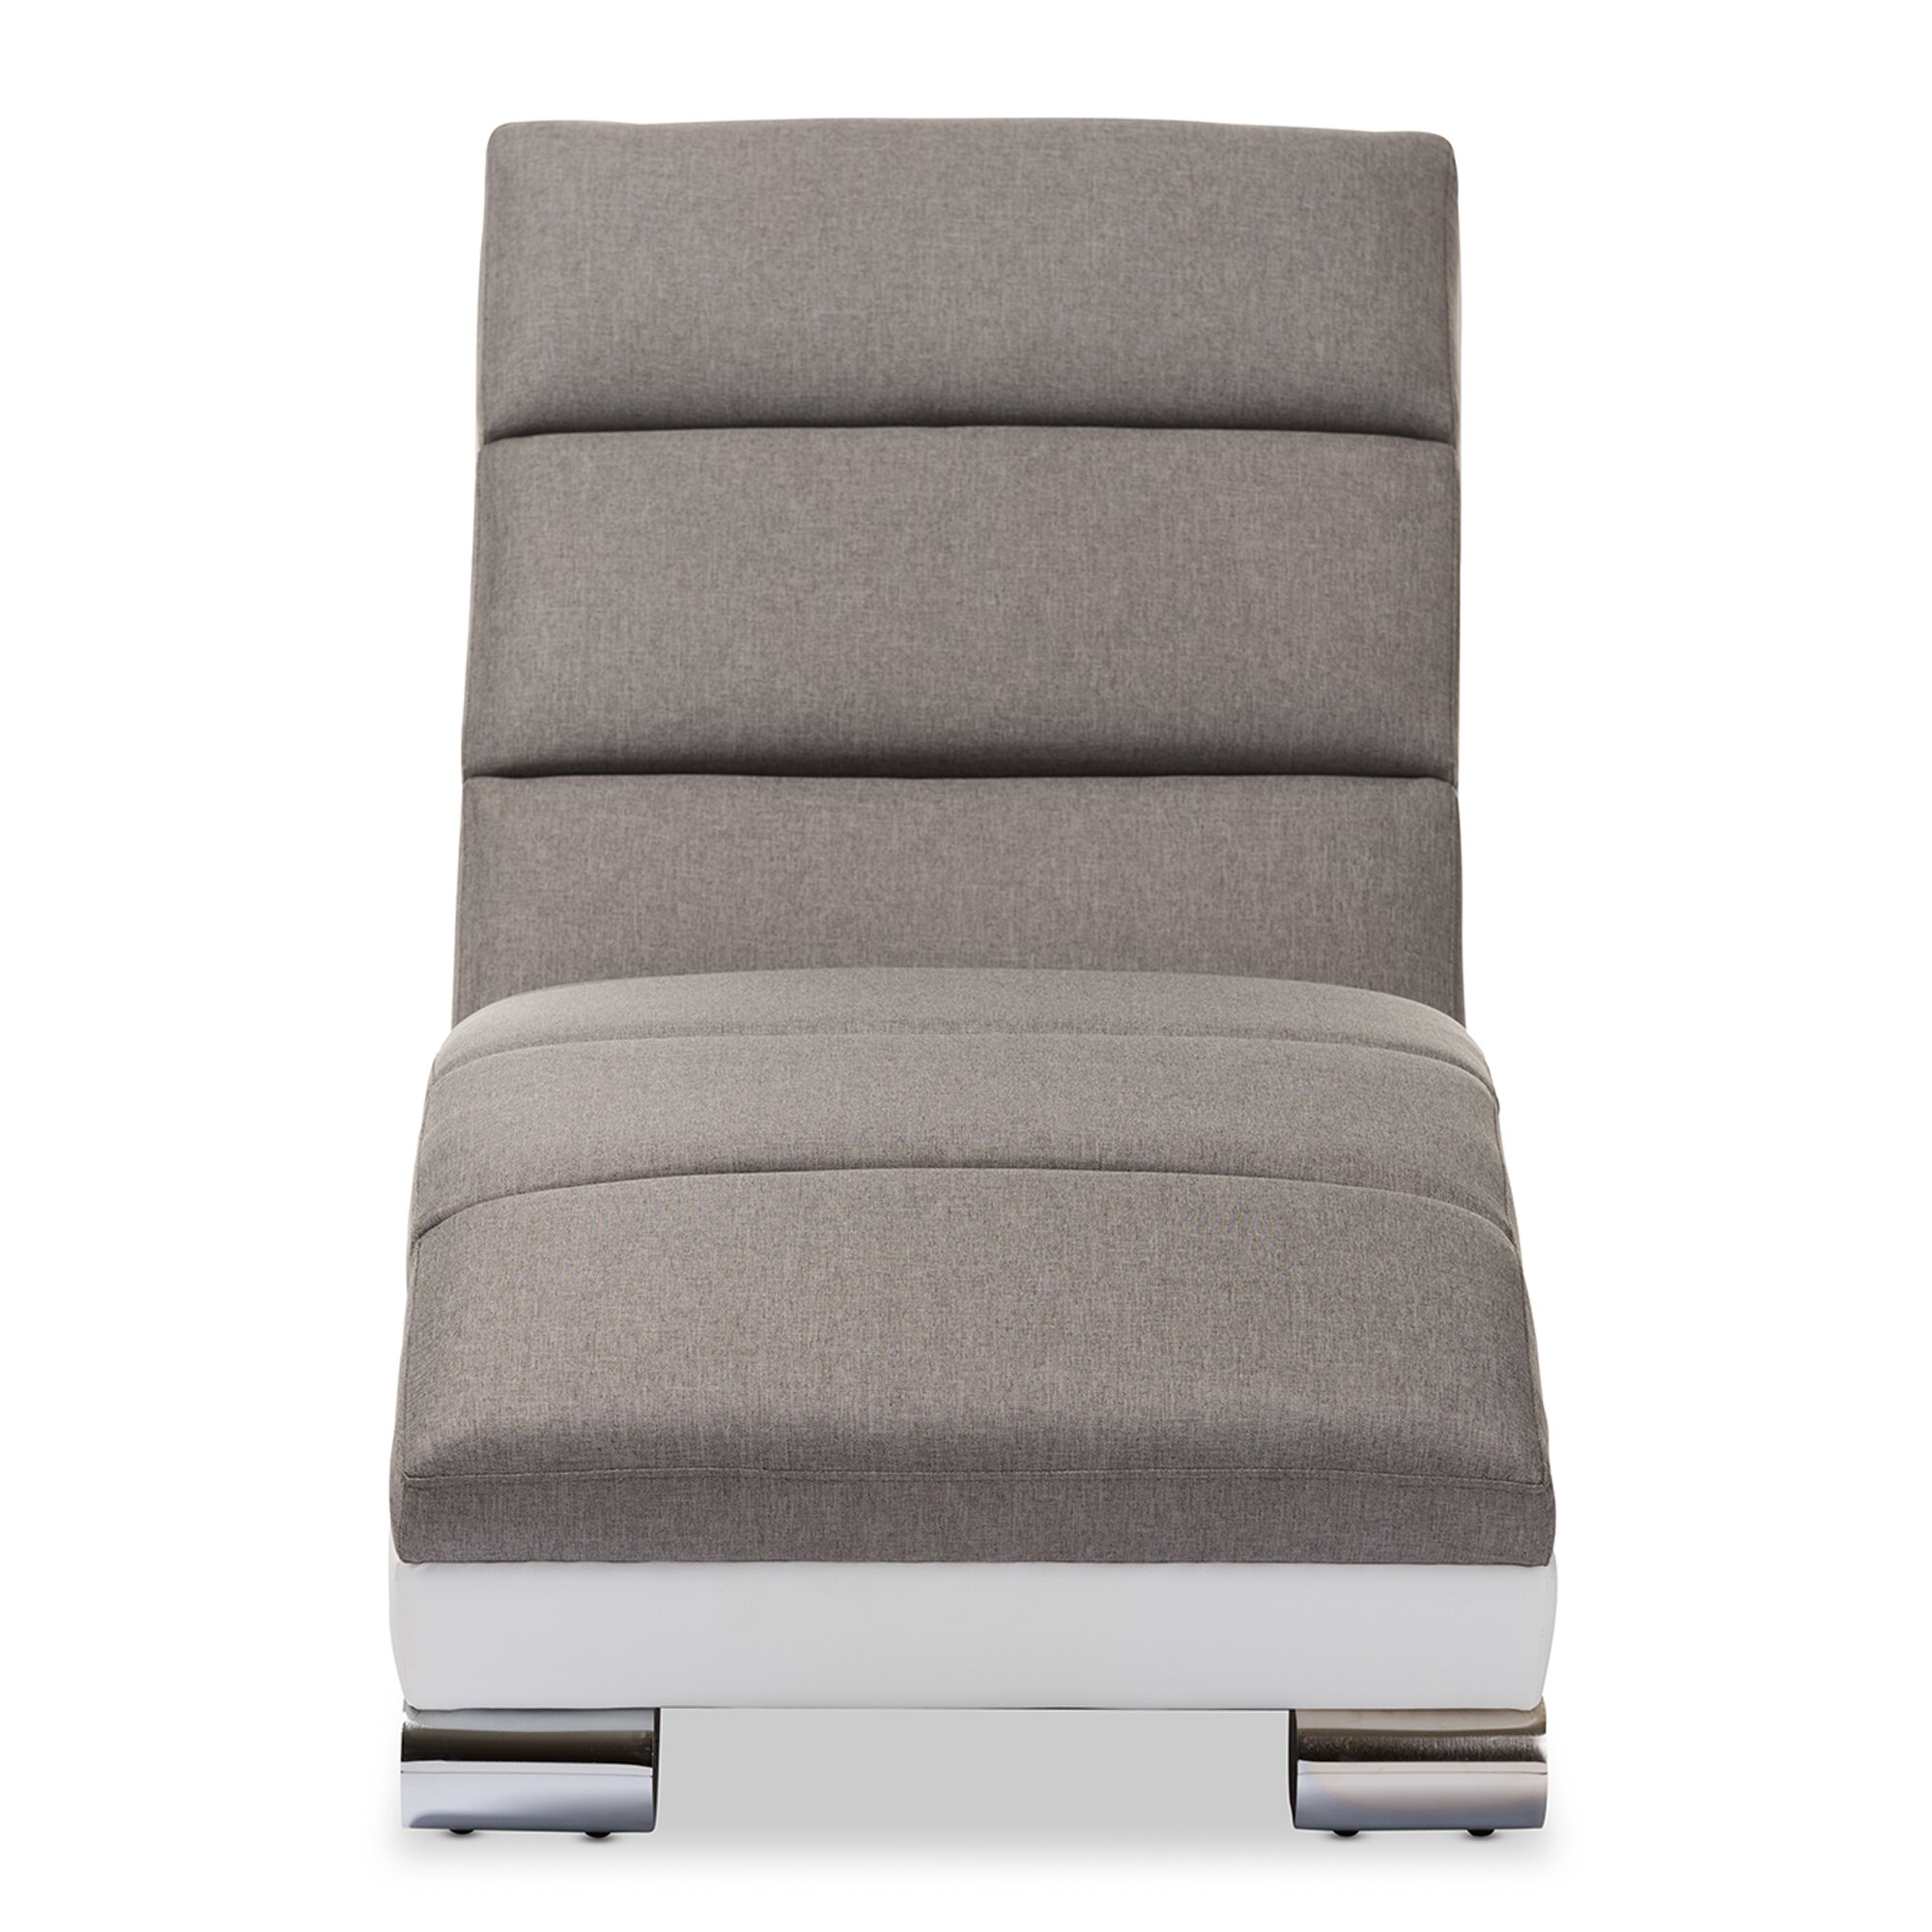 Polyester Blend Chaise Lounge Chairs Wholesale Interiors SKU WHI7268